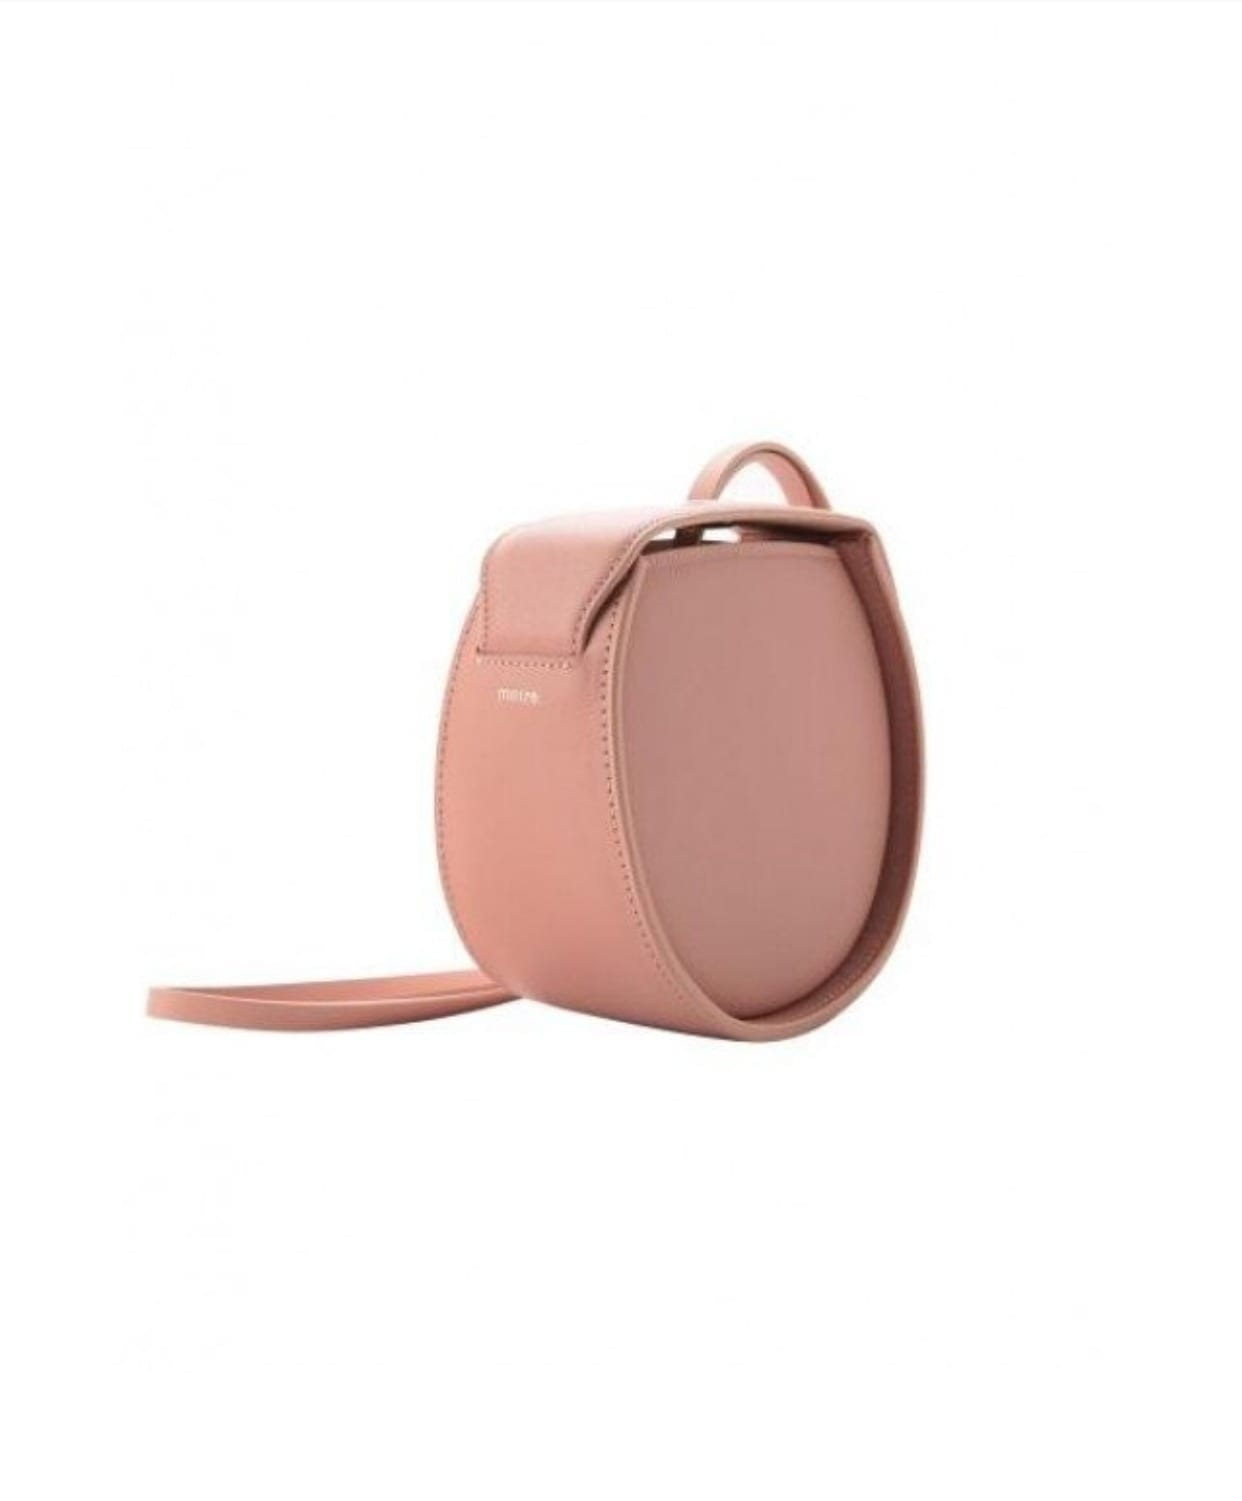 Che borsa mi consigliate, theladycracy.it, che borsa comprare, che borsa regalare, elisa bellino, fashion blog, fashion blogger italiane 2017, fashion blogger famose 2017, blog moda 2017, blogger moda più seguite 2017, w concept bag moire bag